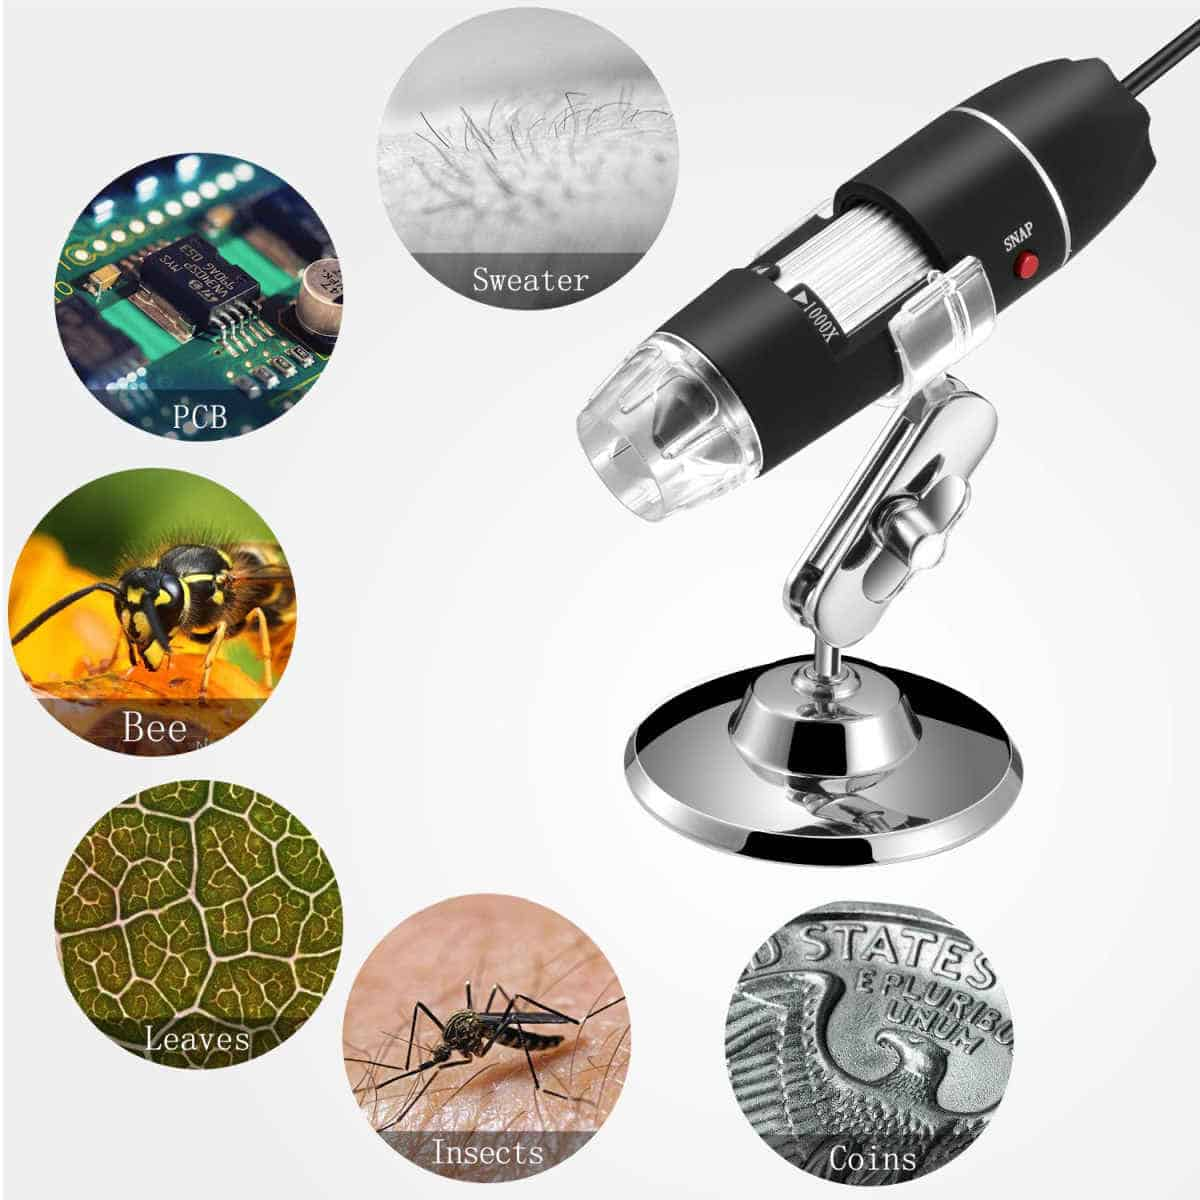 Jiusion Handheld Digital Microscope | Tech Toys The Kids Will Surely Love